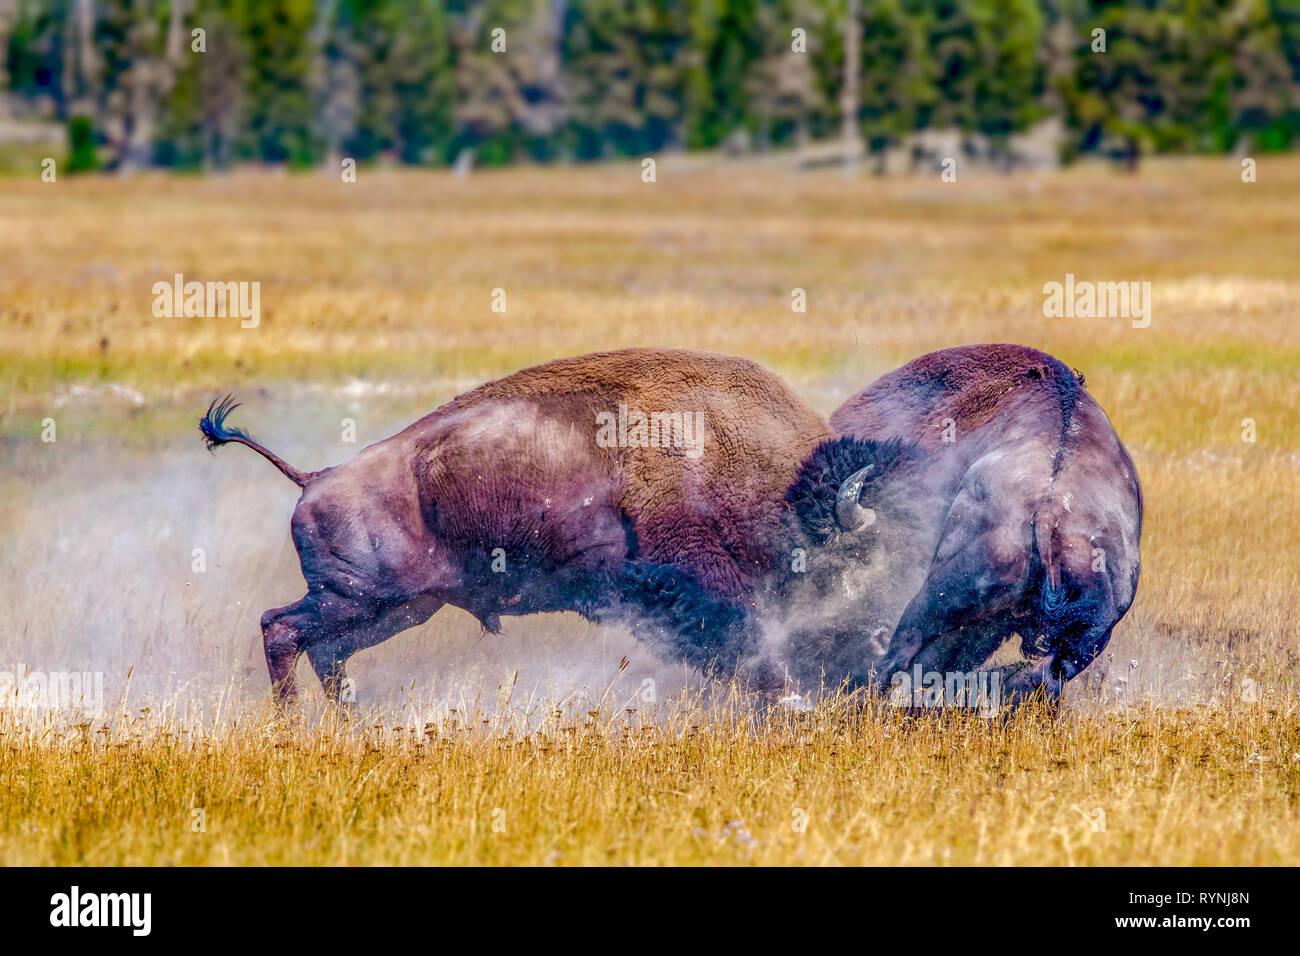 Giant alpha male bison smashes into another rival bison to show dominance and control of the heard. - Stock Image